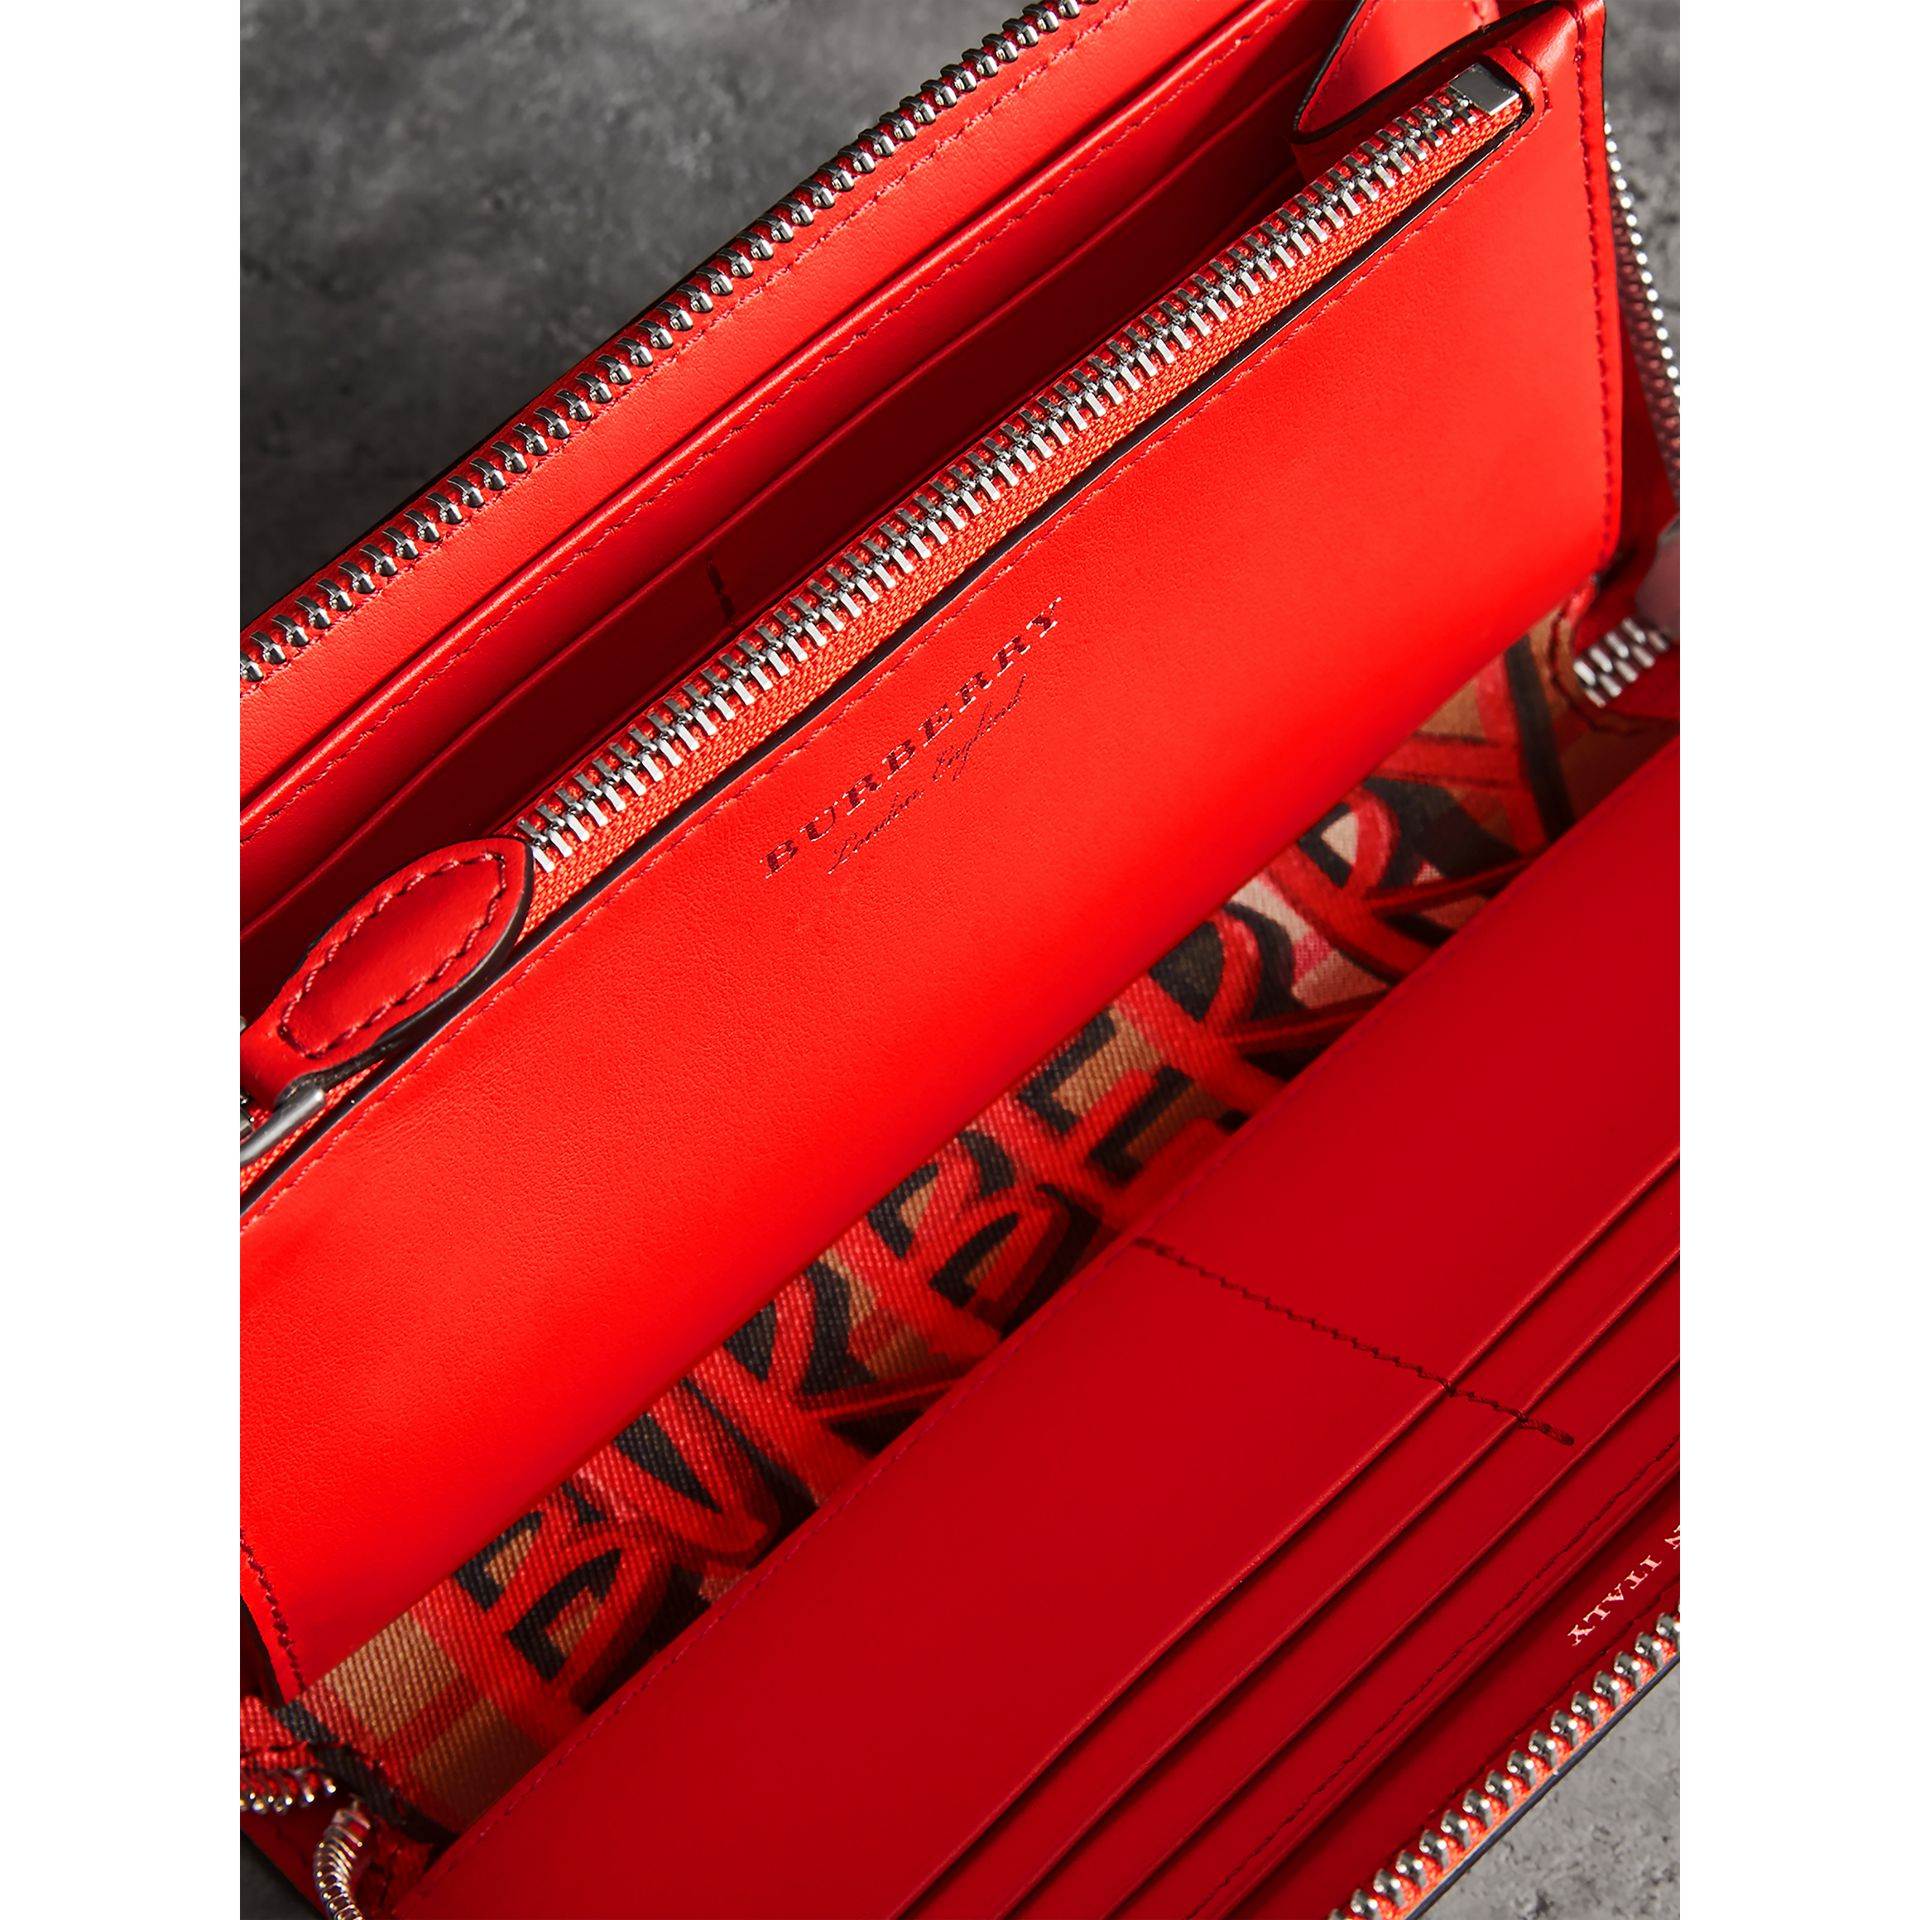 Graffiti Print Vintage Check Leather Ziparound Wallet in Red - Women | Burberry Singapore - gallery image 3